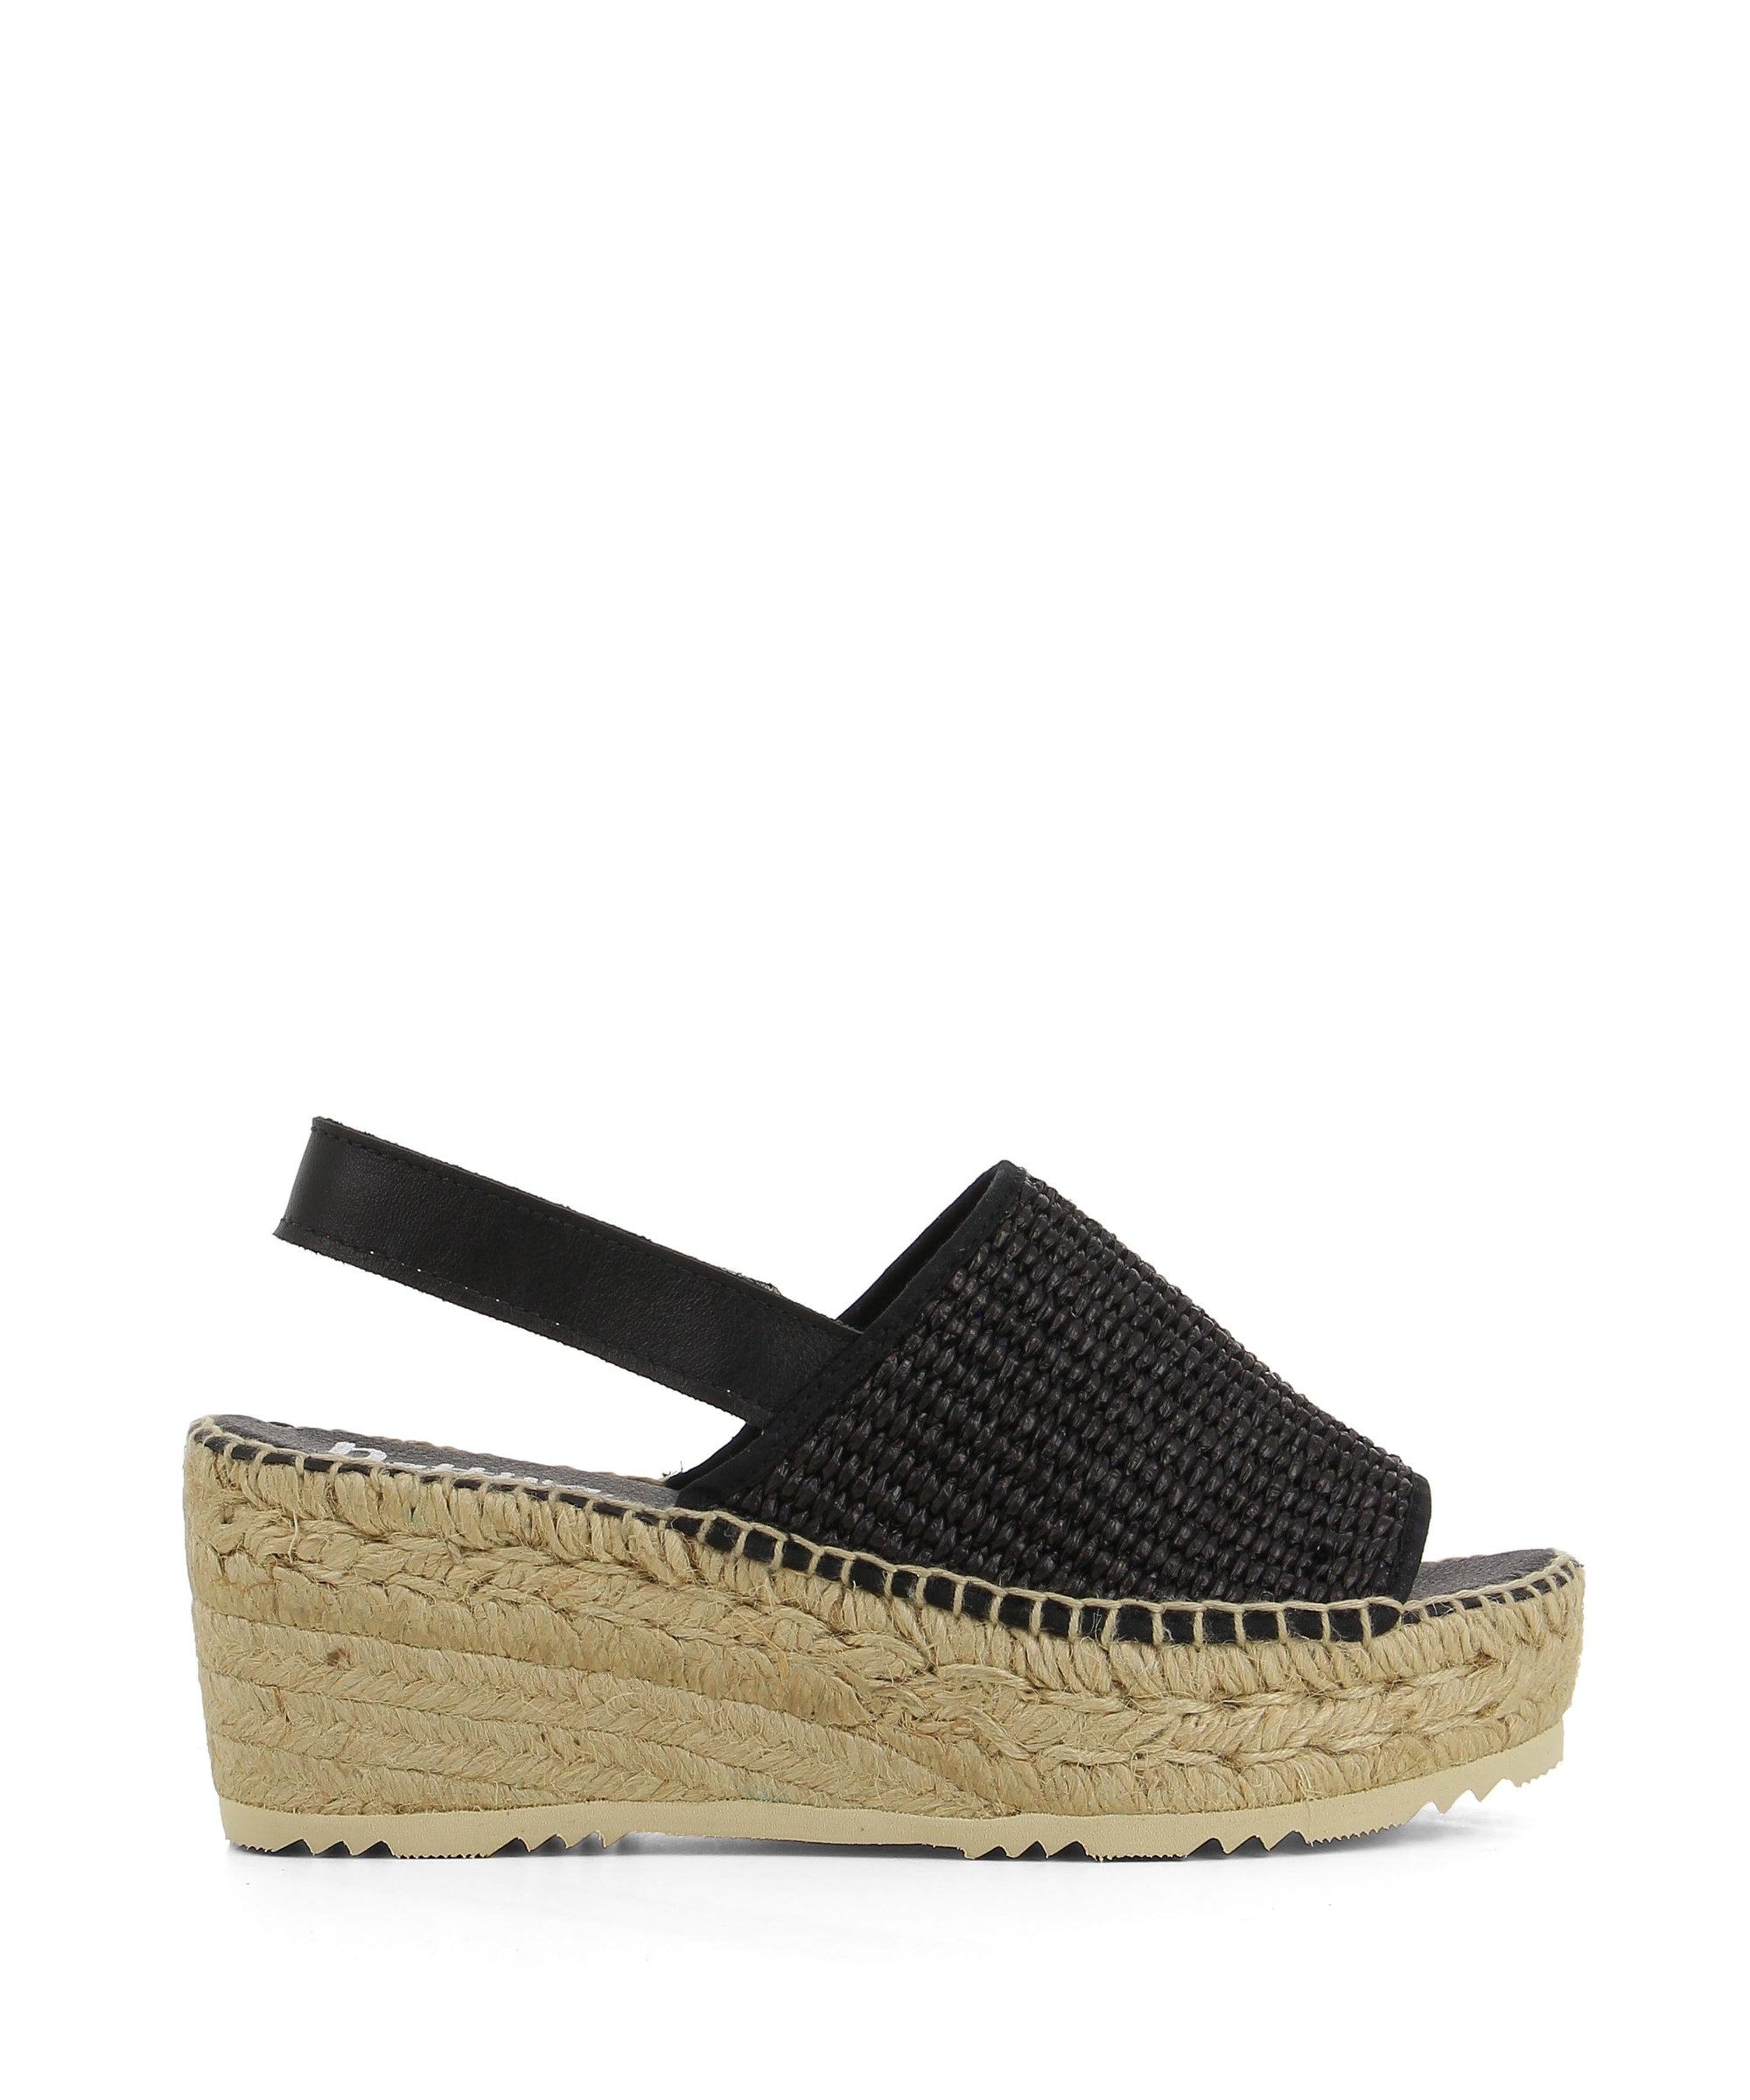 Chic black espadrille style platform sandals that have a slingback ankle strap, and features a woven upper, a braided jute sole and a open round toe by Nattiva.